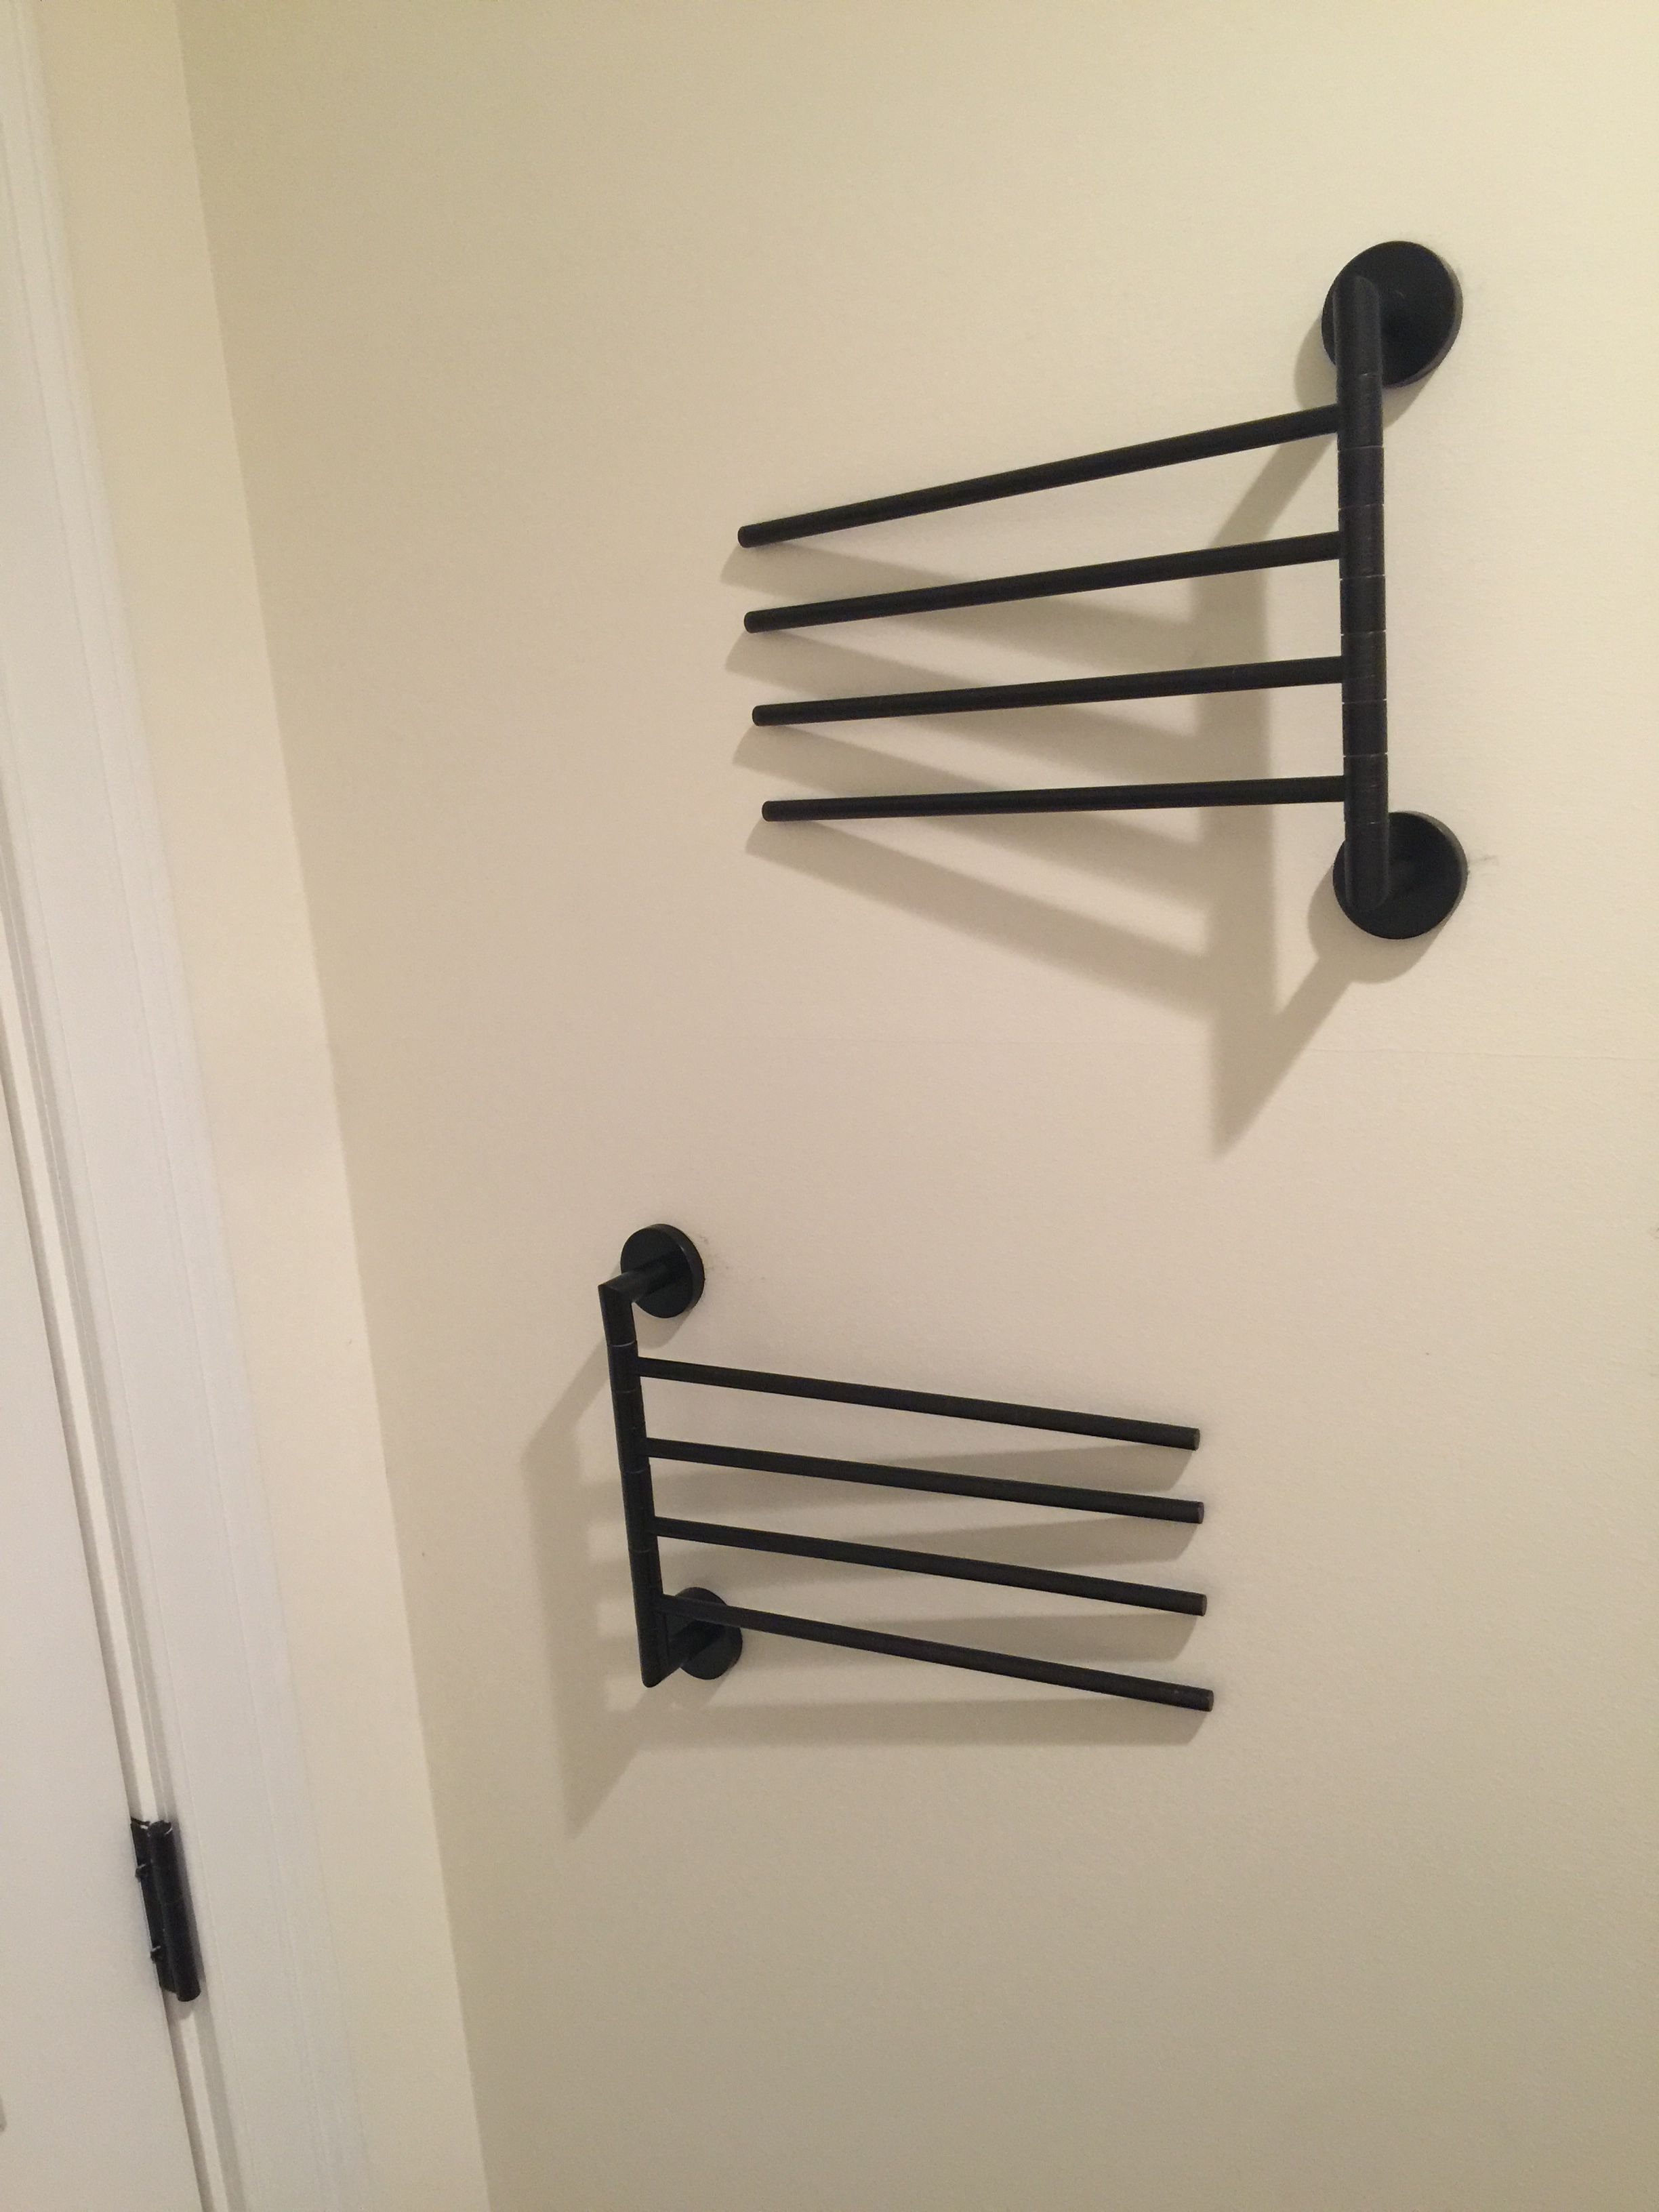 Winter Wet Snow Clothes Drying Rack By The Door Clothes Drying Racks Drying Clothes Laundry Room Inspiration